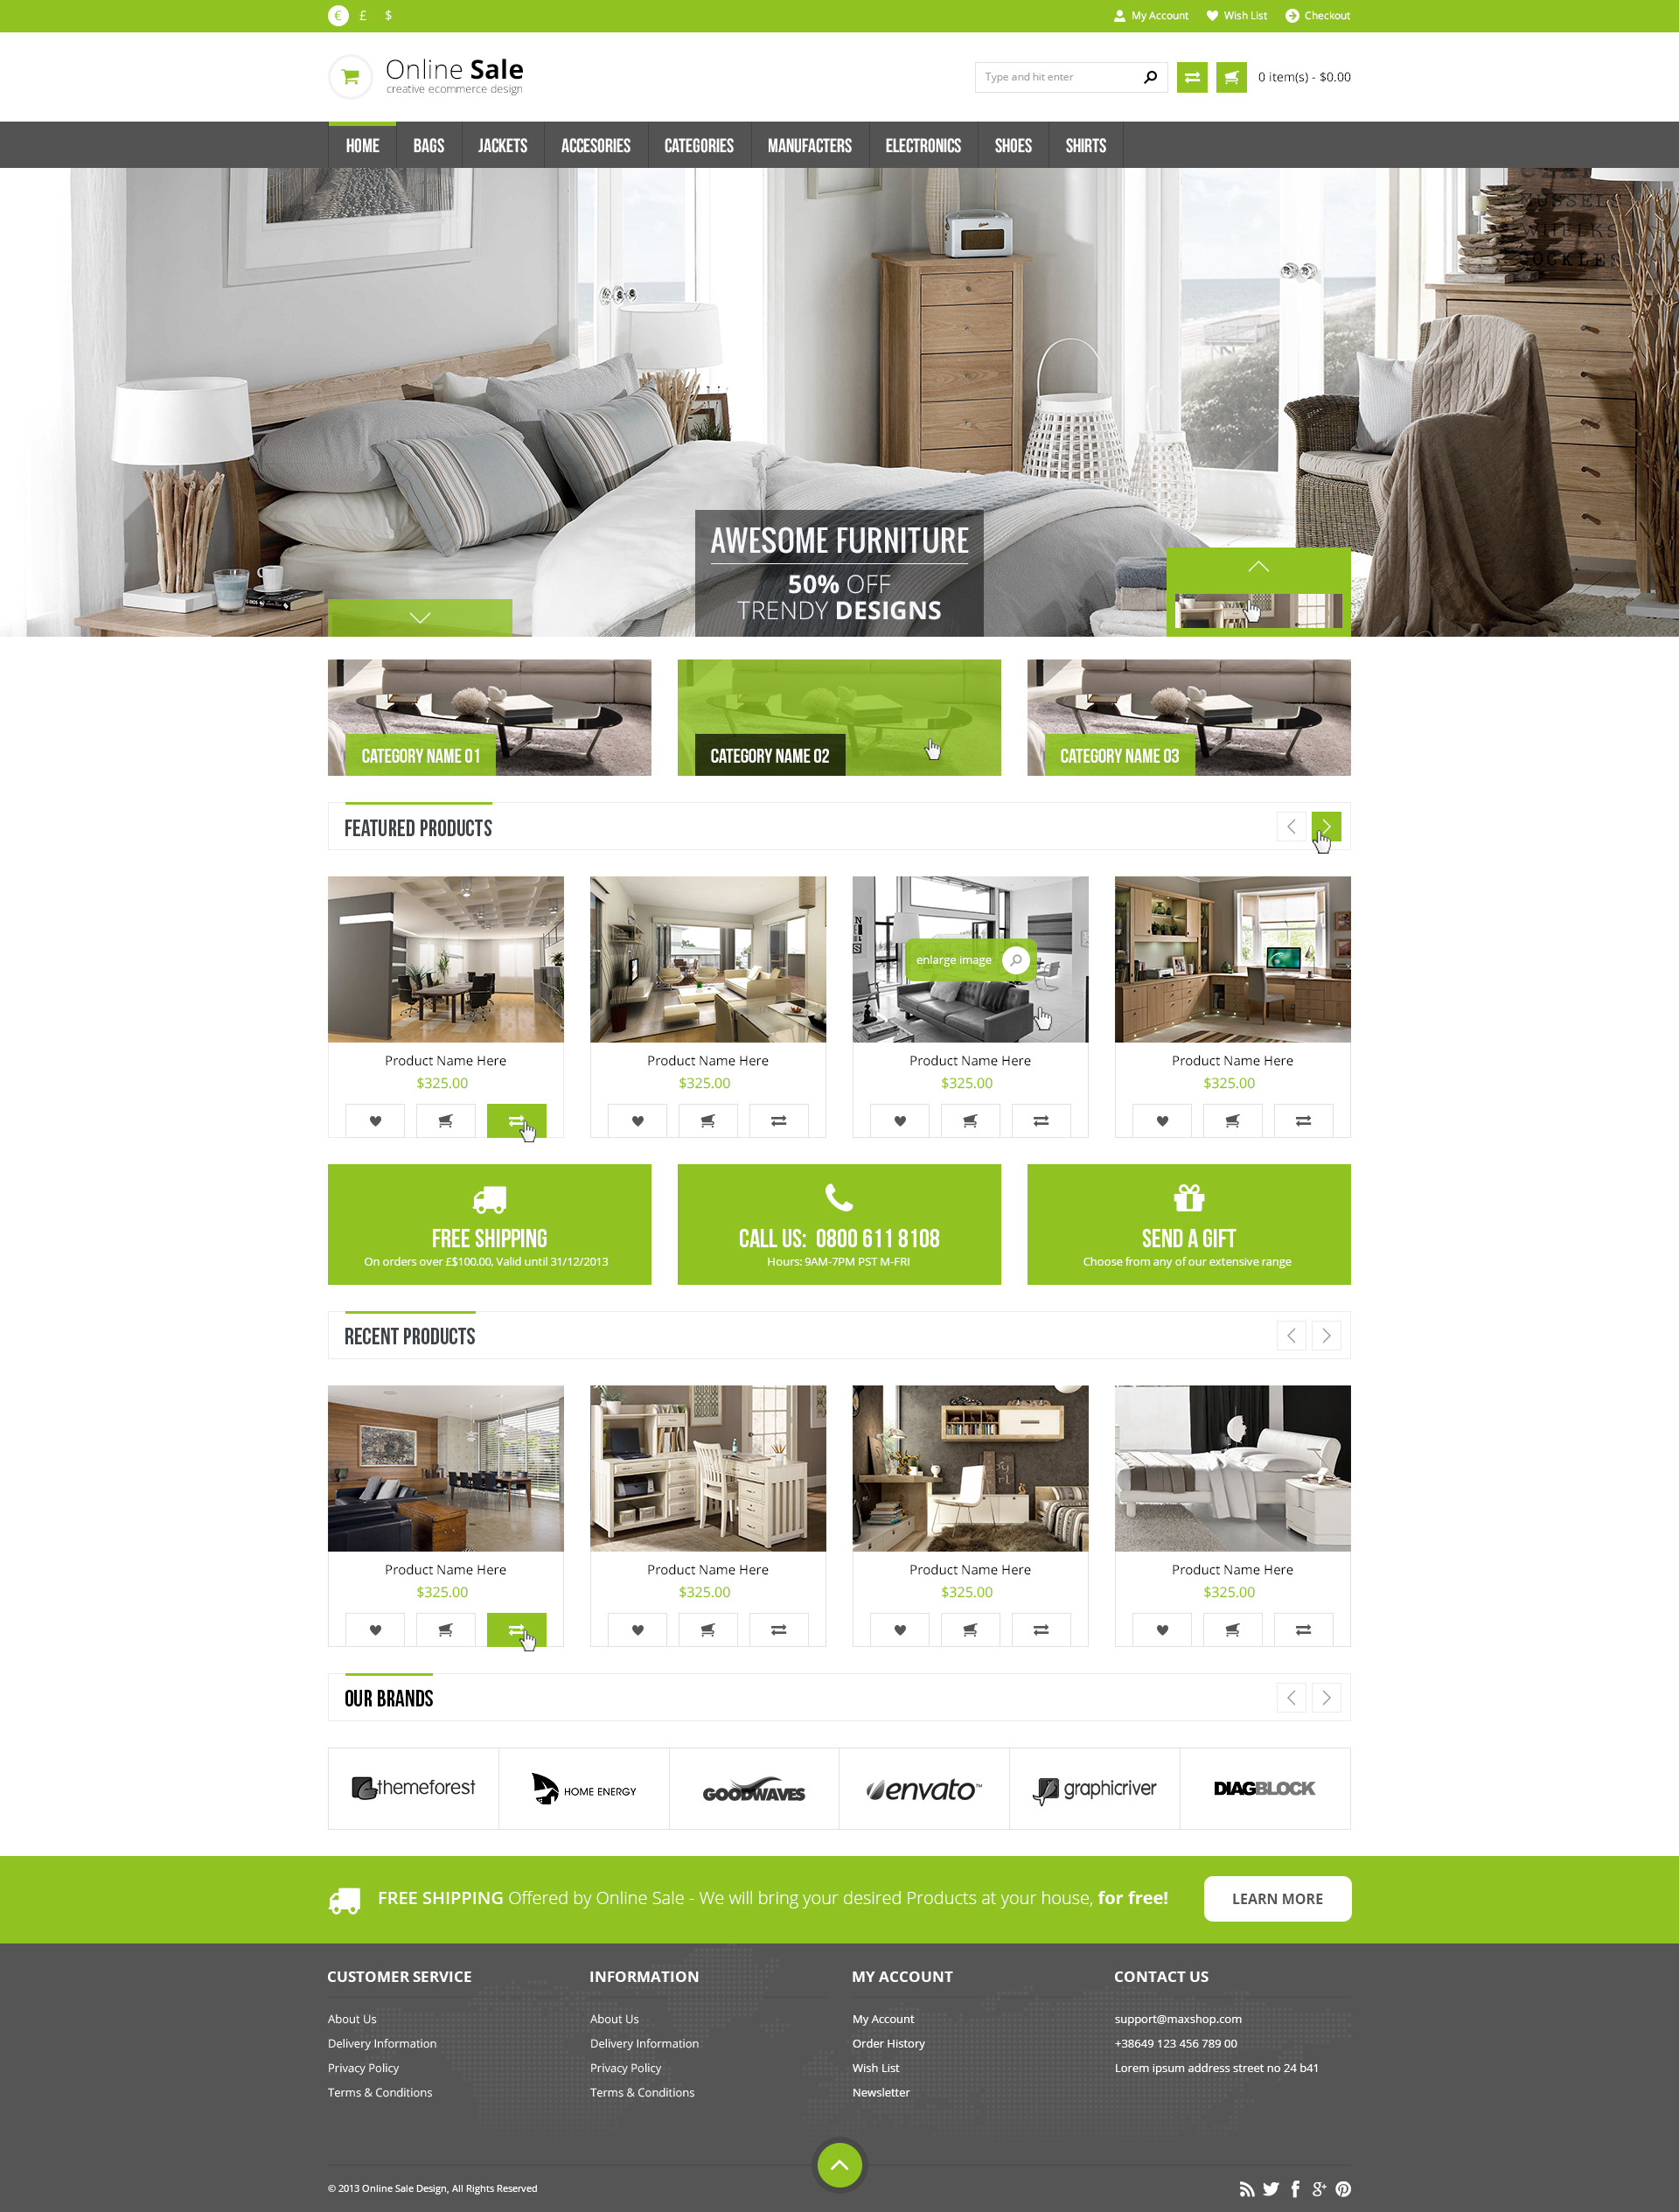 Online Sale - Responsive HTML5 eCommerce Template by PremiumLayers